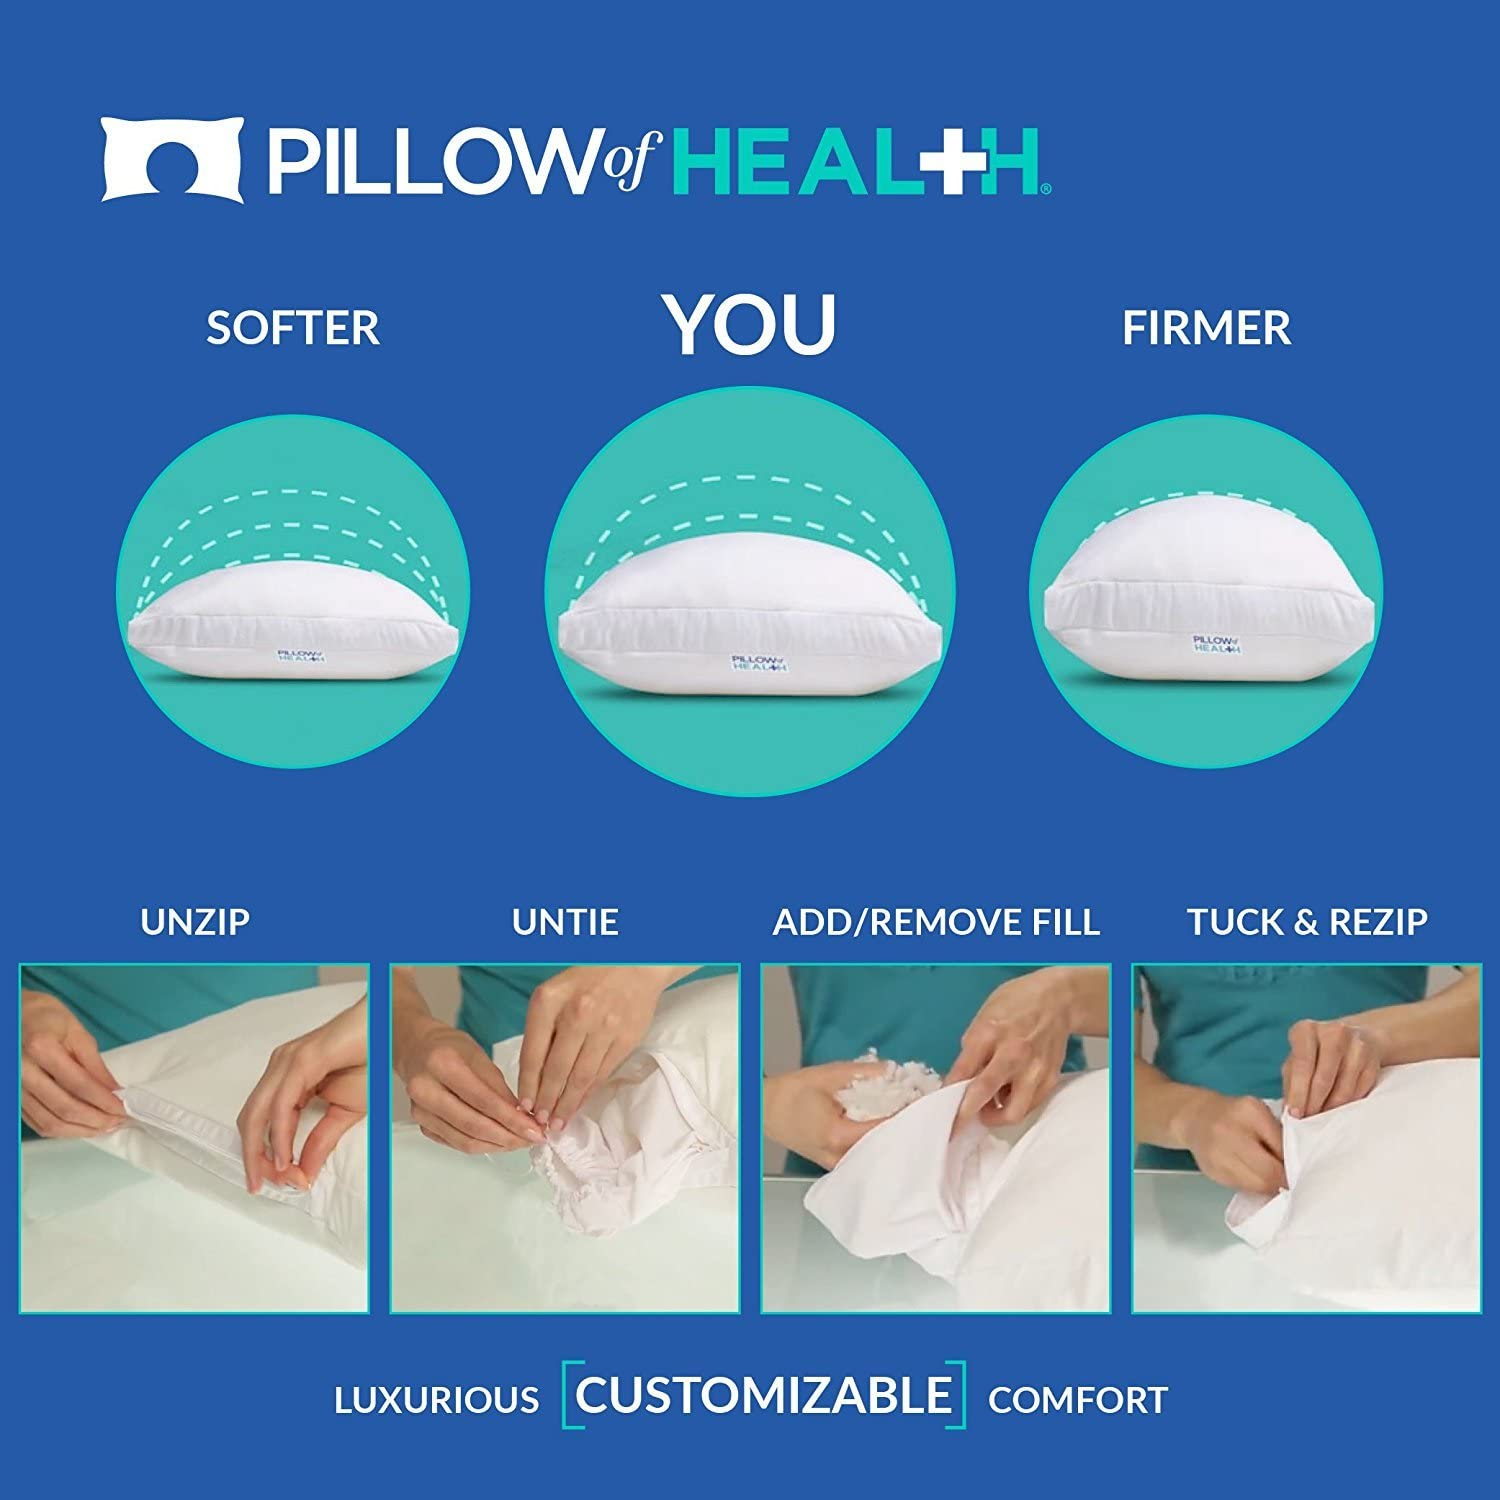 Medical Grade Pressure Relief Pillow of Health Chiro Elite Adjustable Pillow Hypoallergenic Customizable Firmness Antimicrobial Twin Size 20 x 26 Cooling Wickable Cover